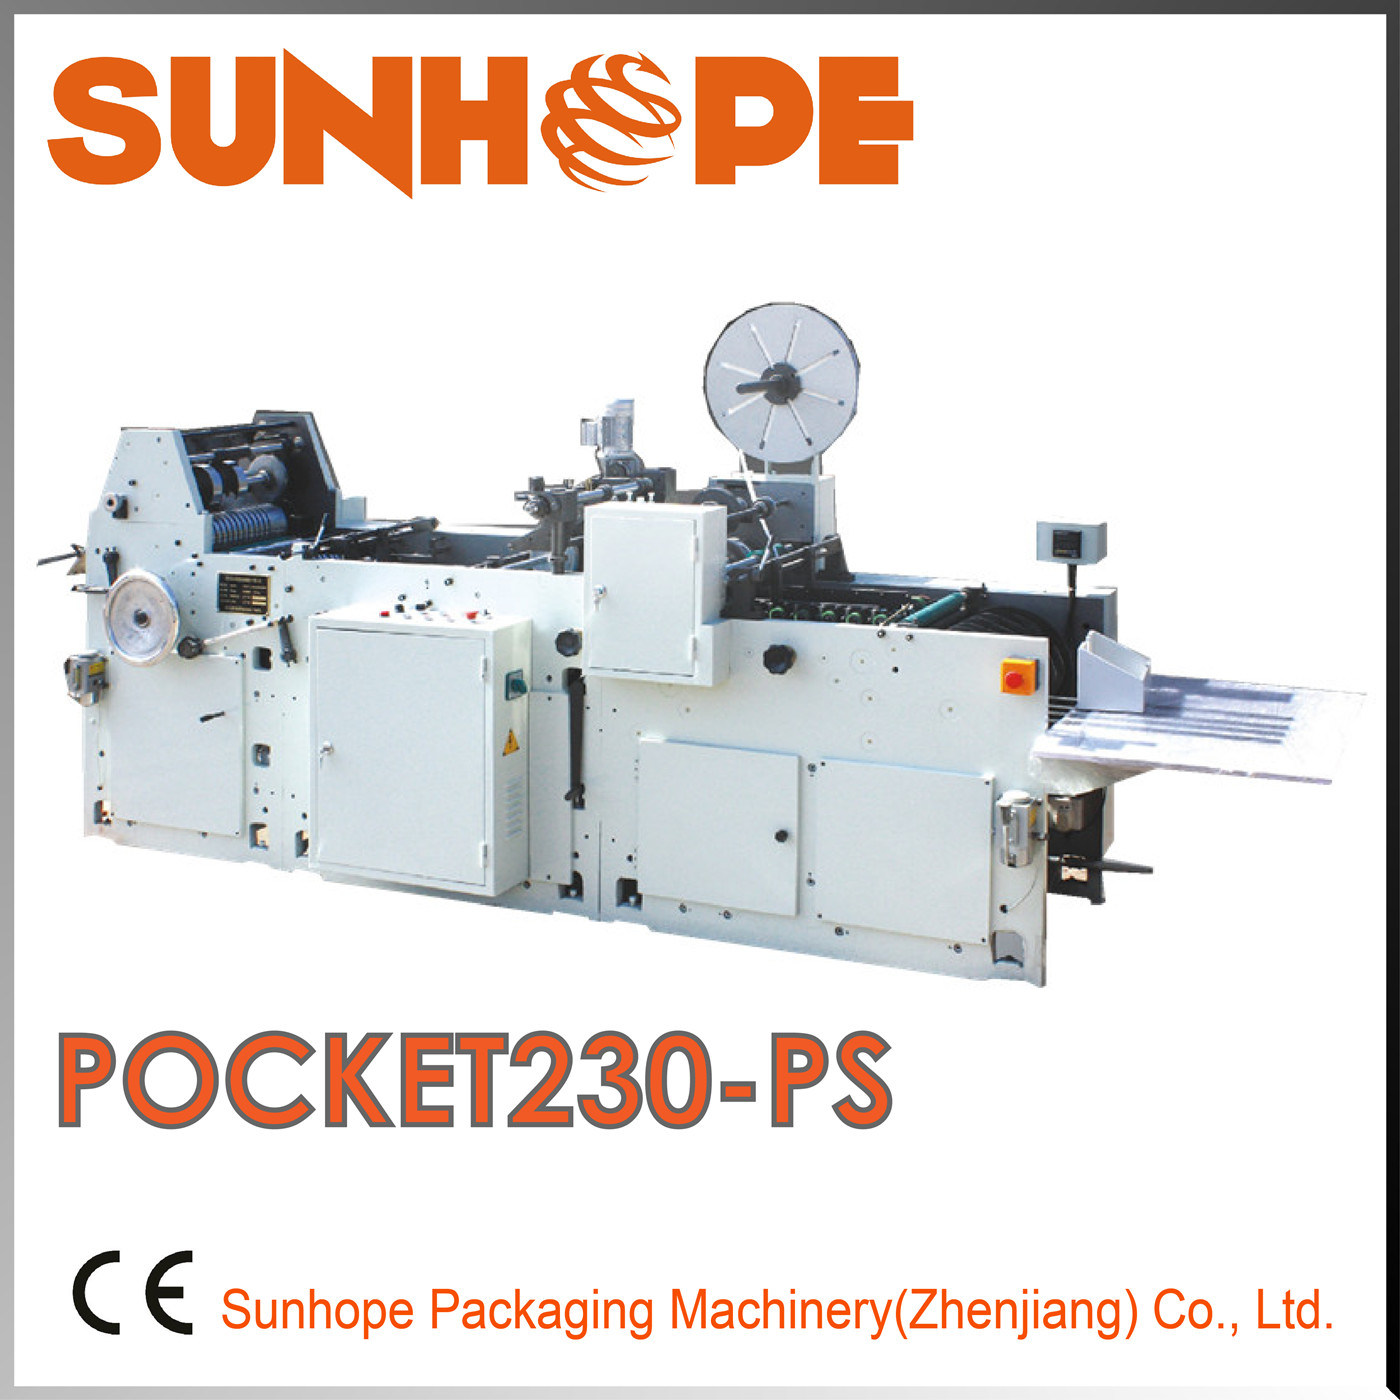 Pocket230-PS Model Pocket Envelope (P&S) Making Machine